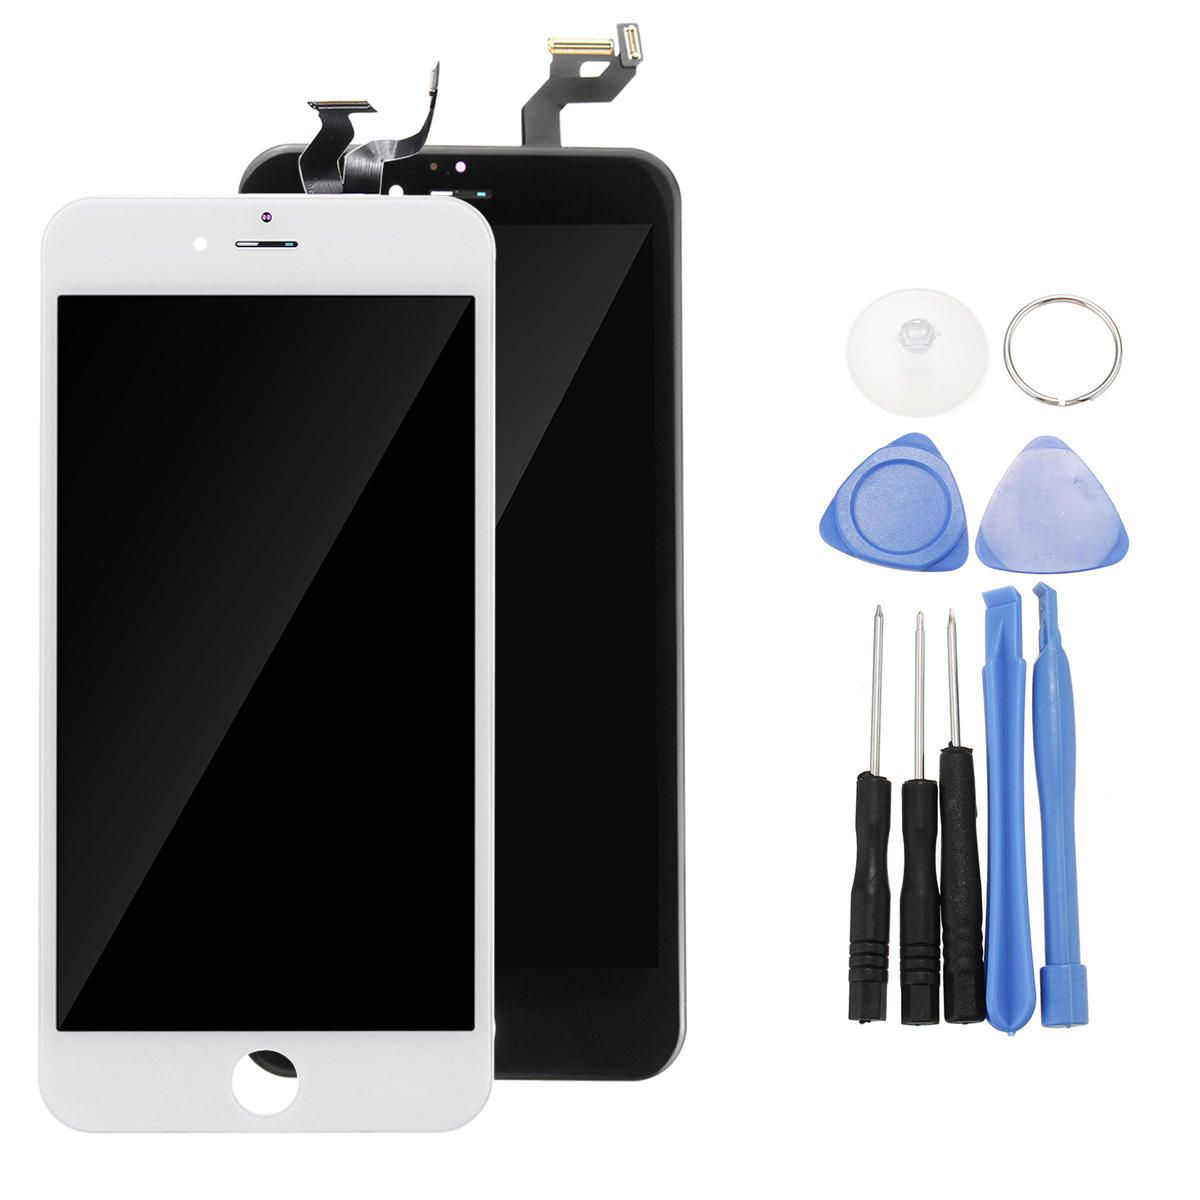 iphone 6s screen replacement kit black